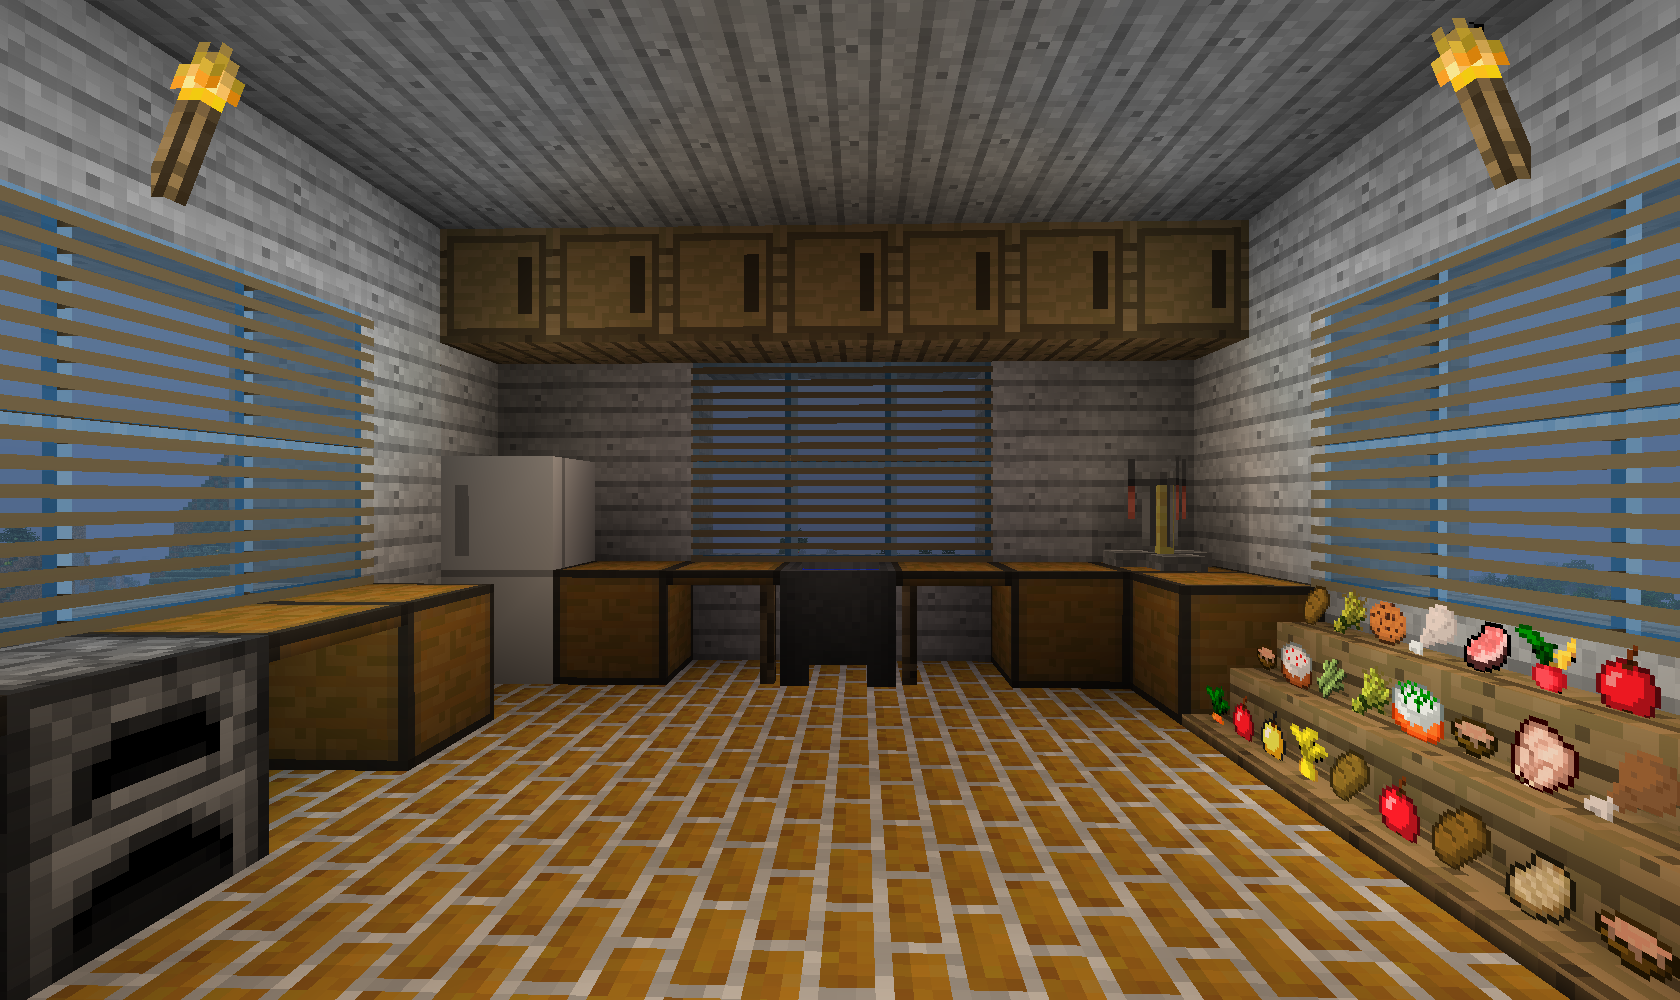 Minecraft kitchen only will use item frames for the food